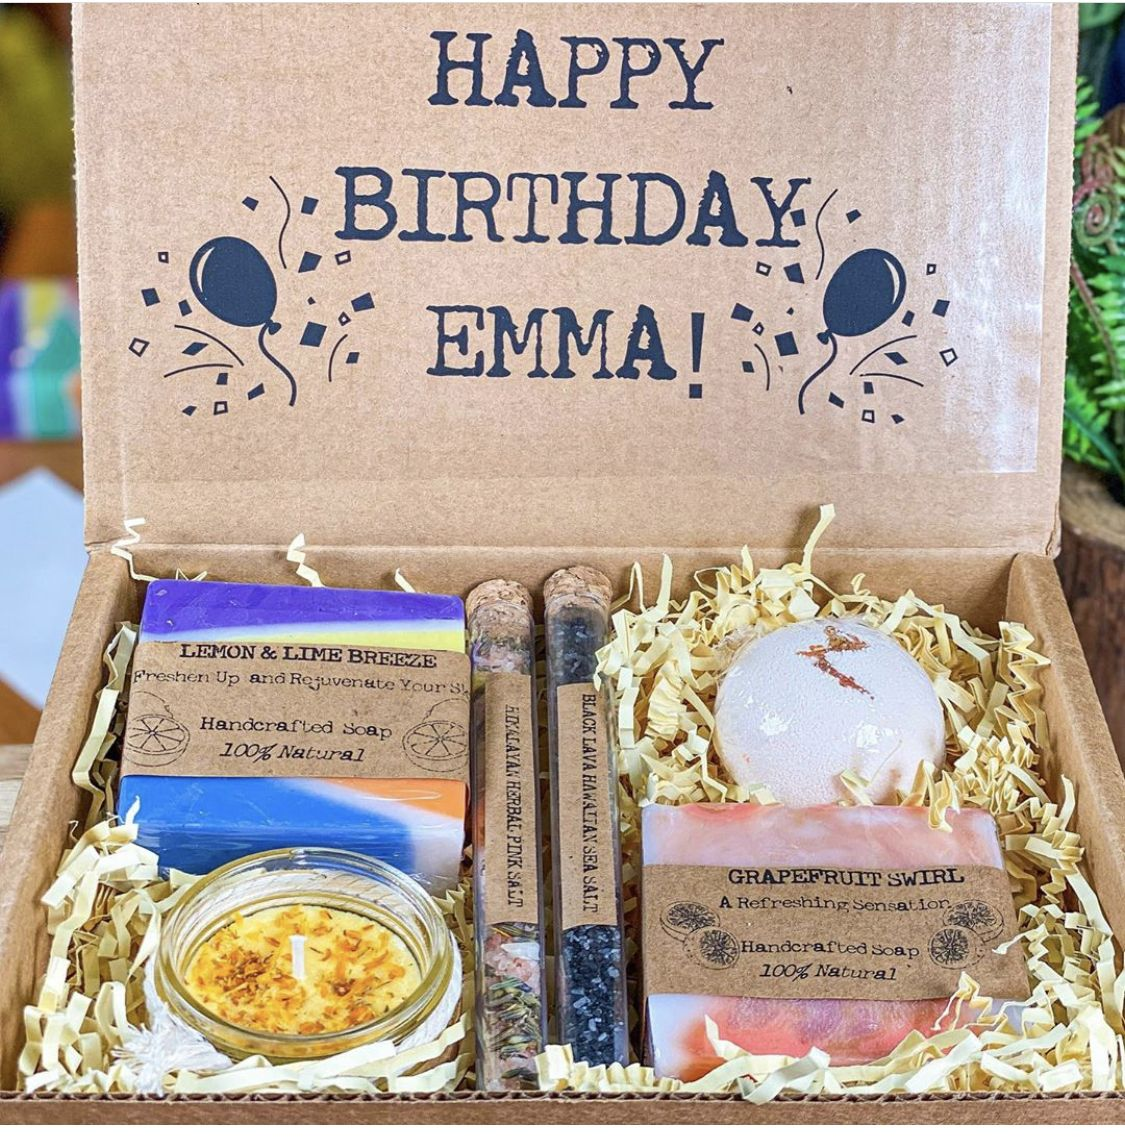 Custom Gift Box Perfect Birthday Anniversary Or Special Occasion Present In 2020 Gifts Gift Box Birthday Custom Gift Boxes